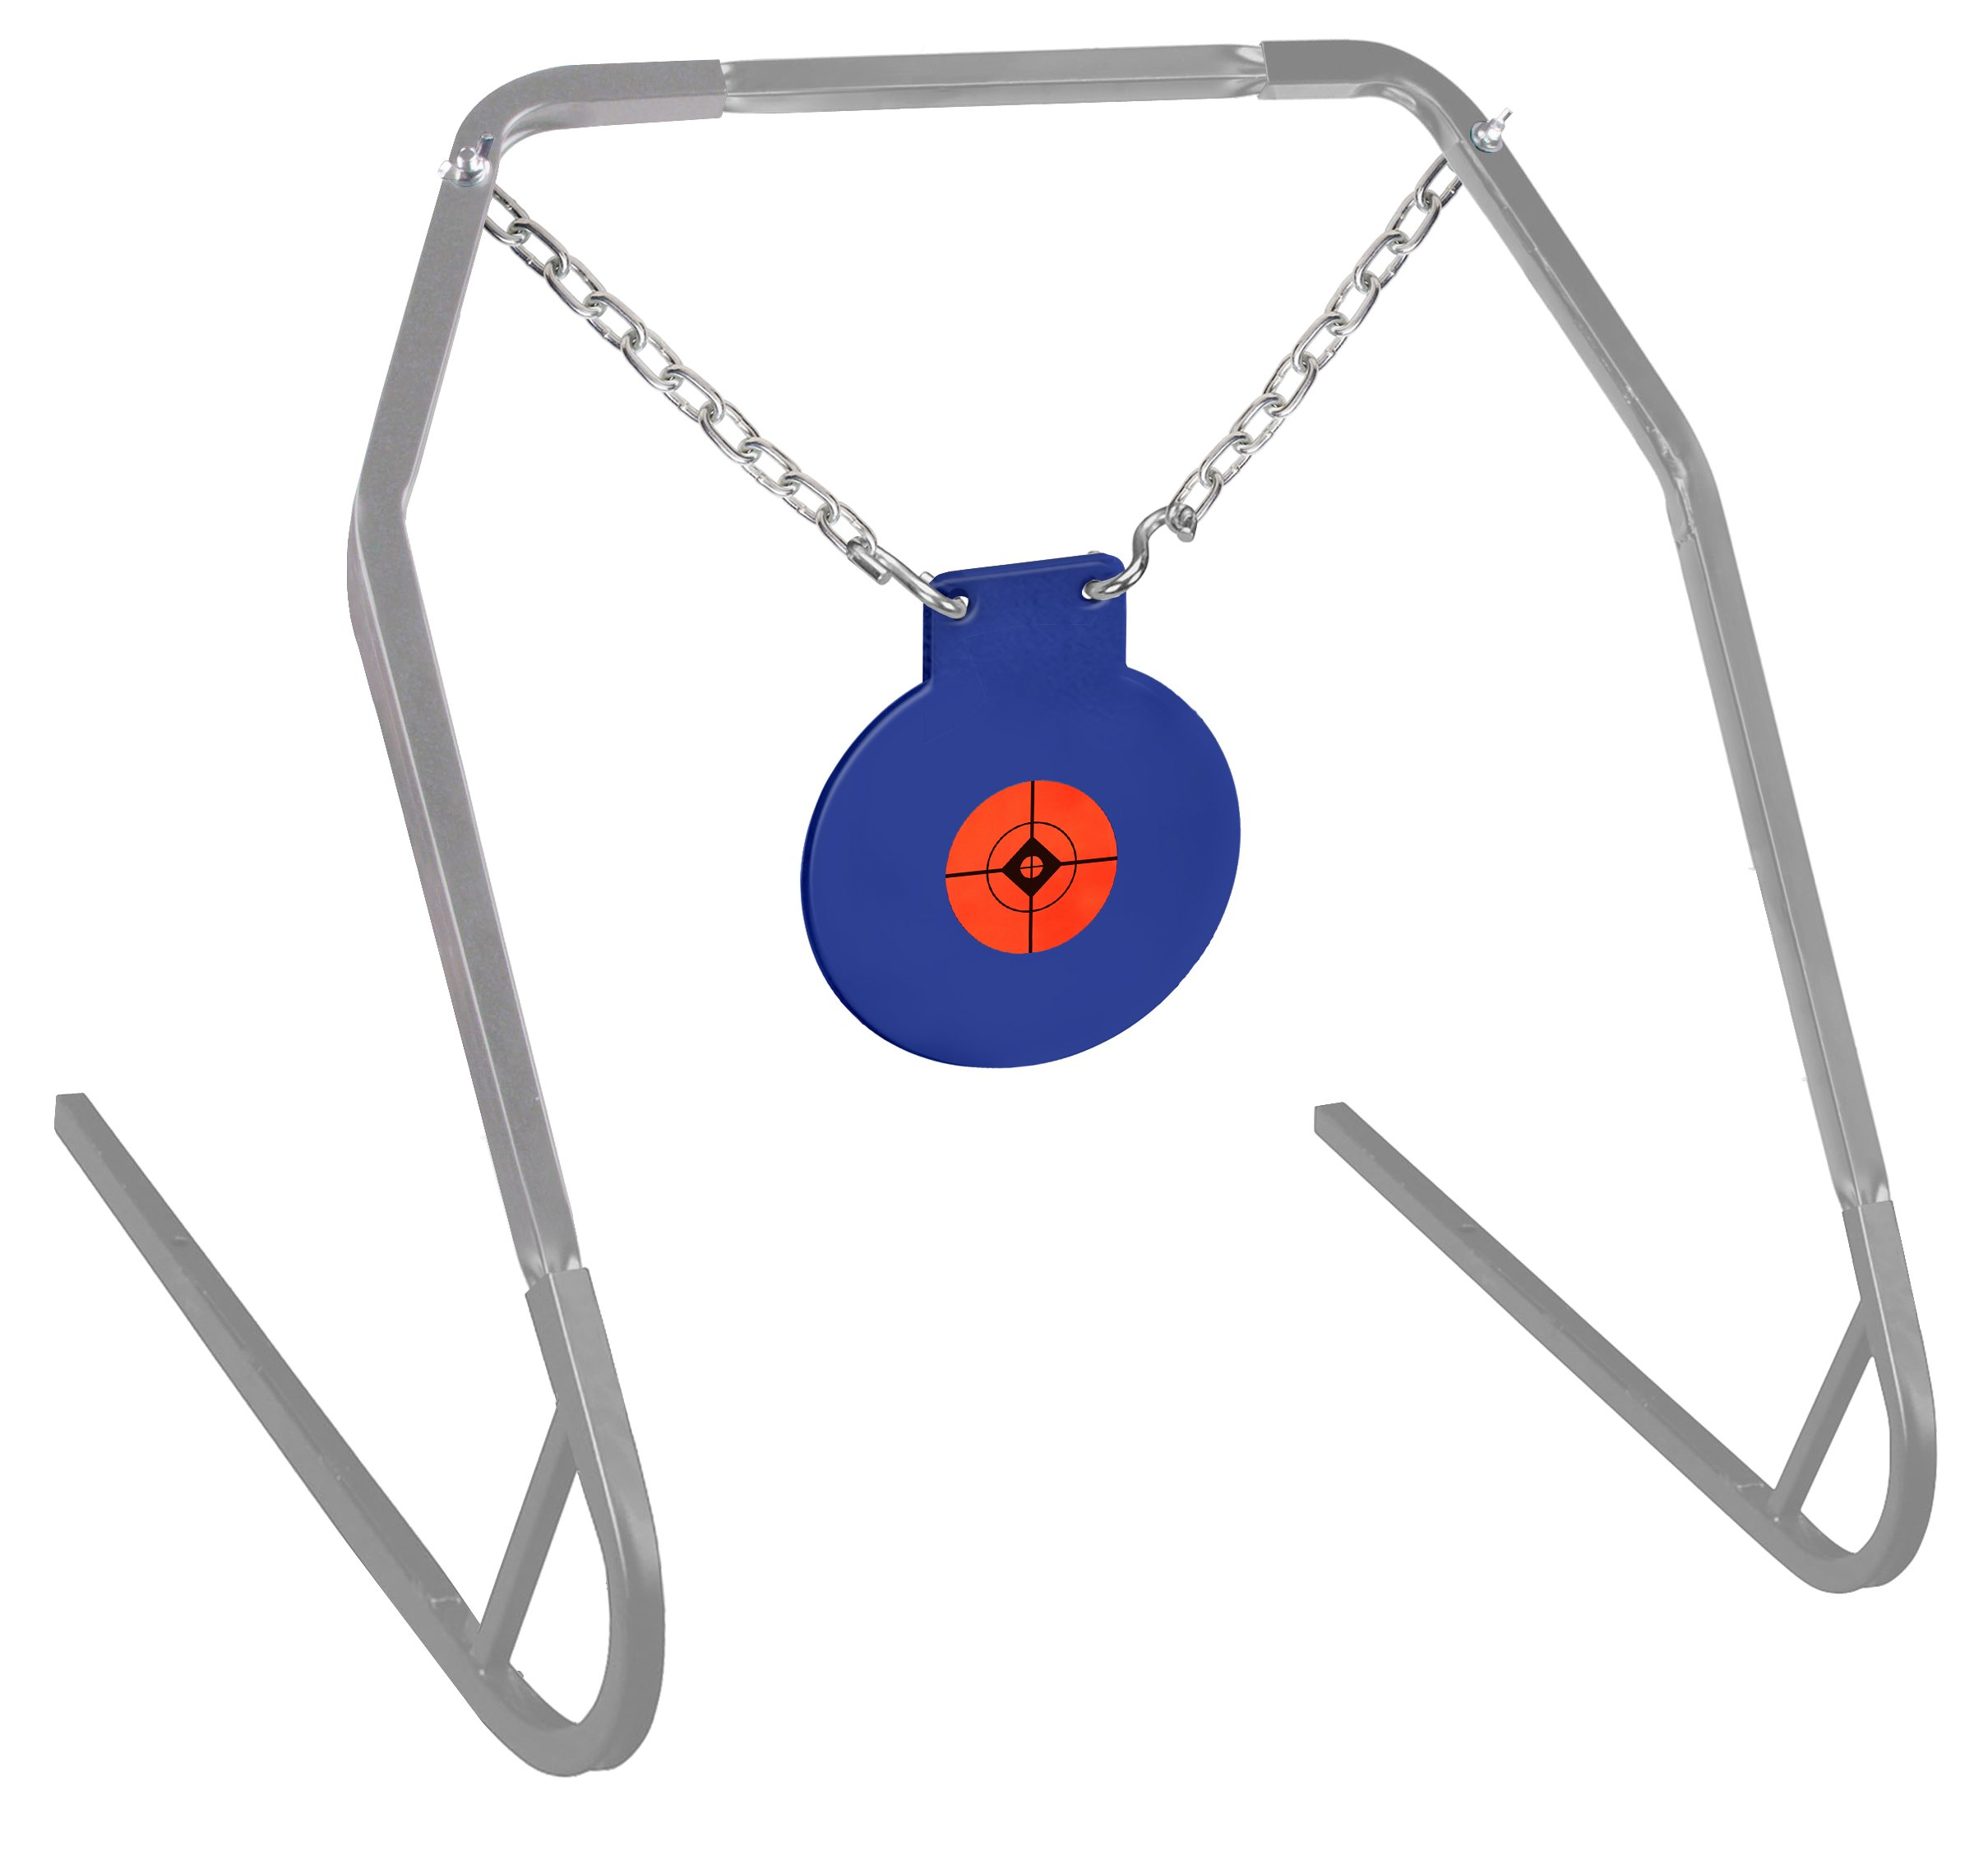 Gunpowder Gear 8'' Gong Shooting Target with Stand